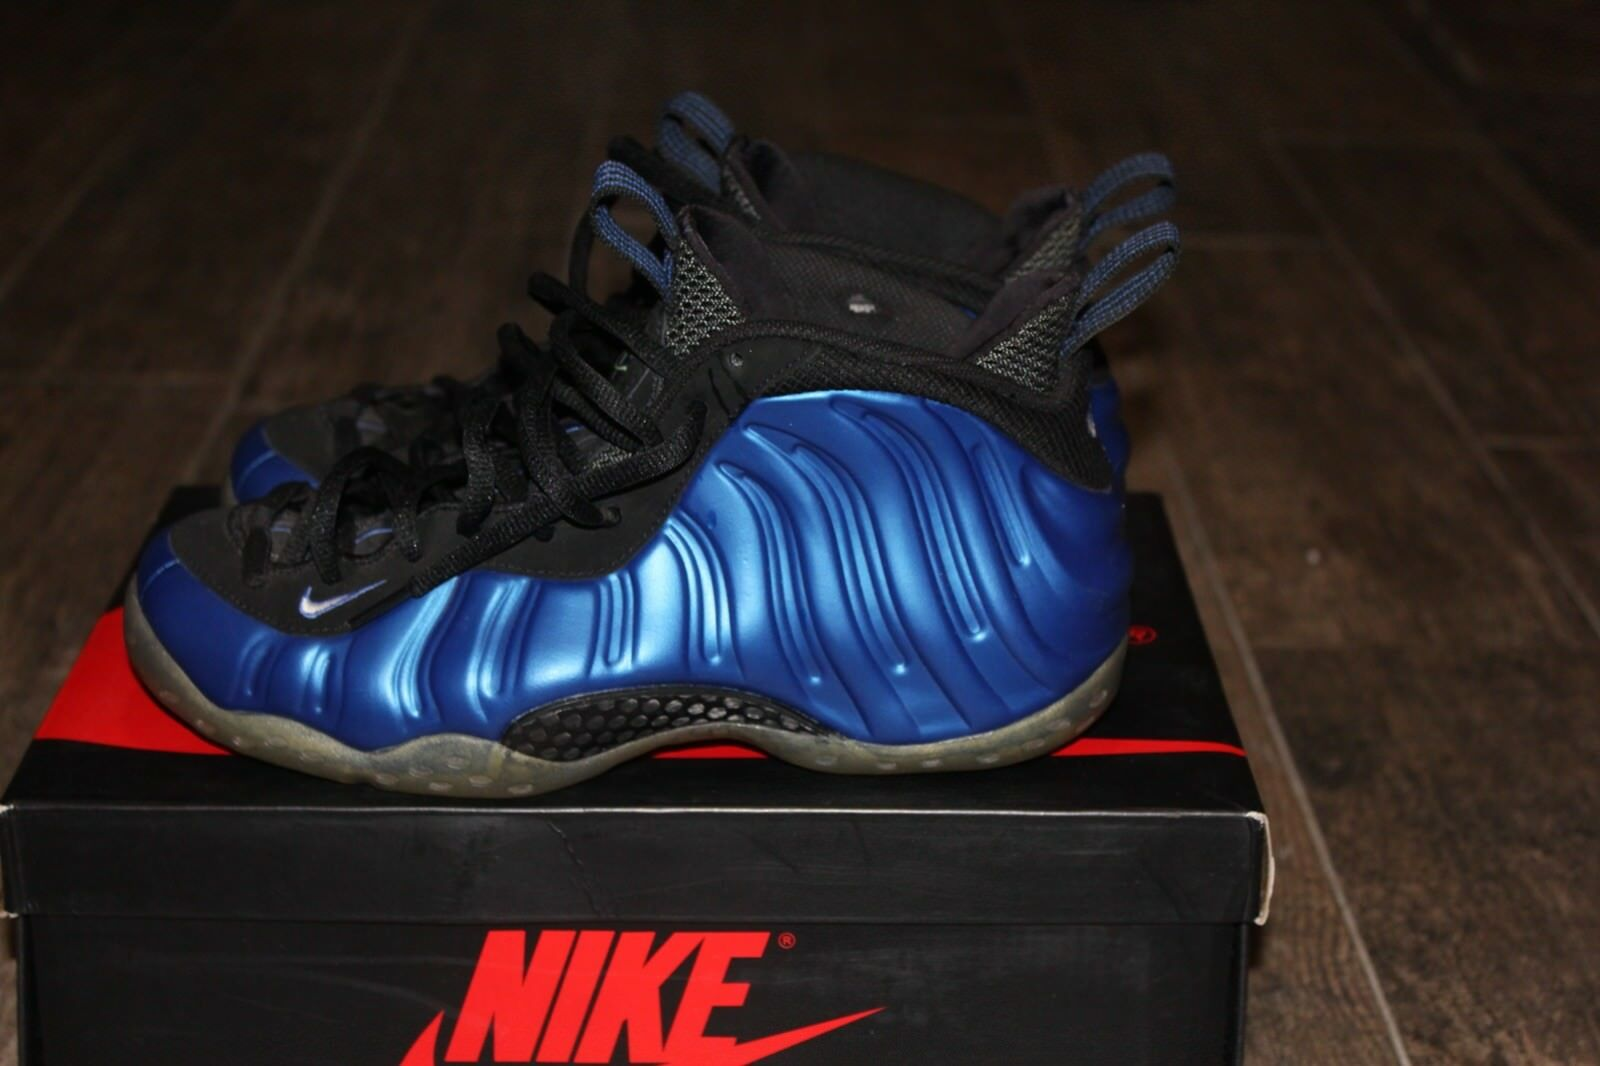 NIKE AIR FOAMPOSITE ONE  Cheap and fashionable